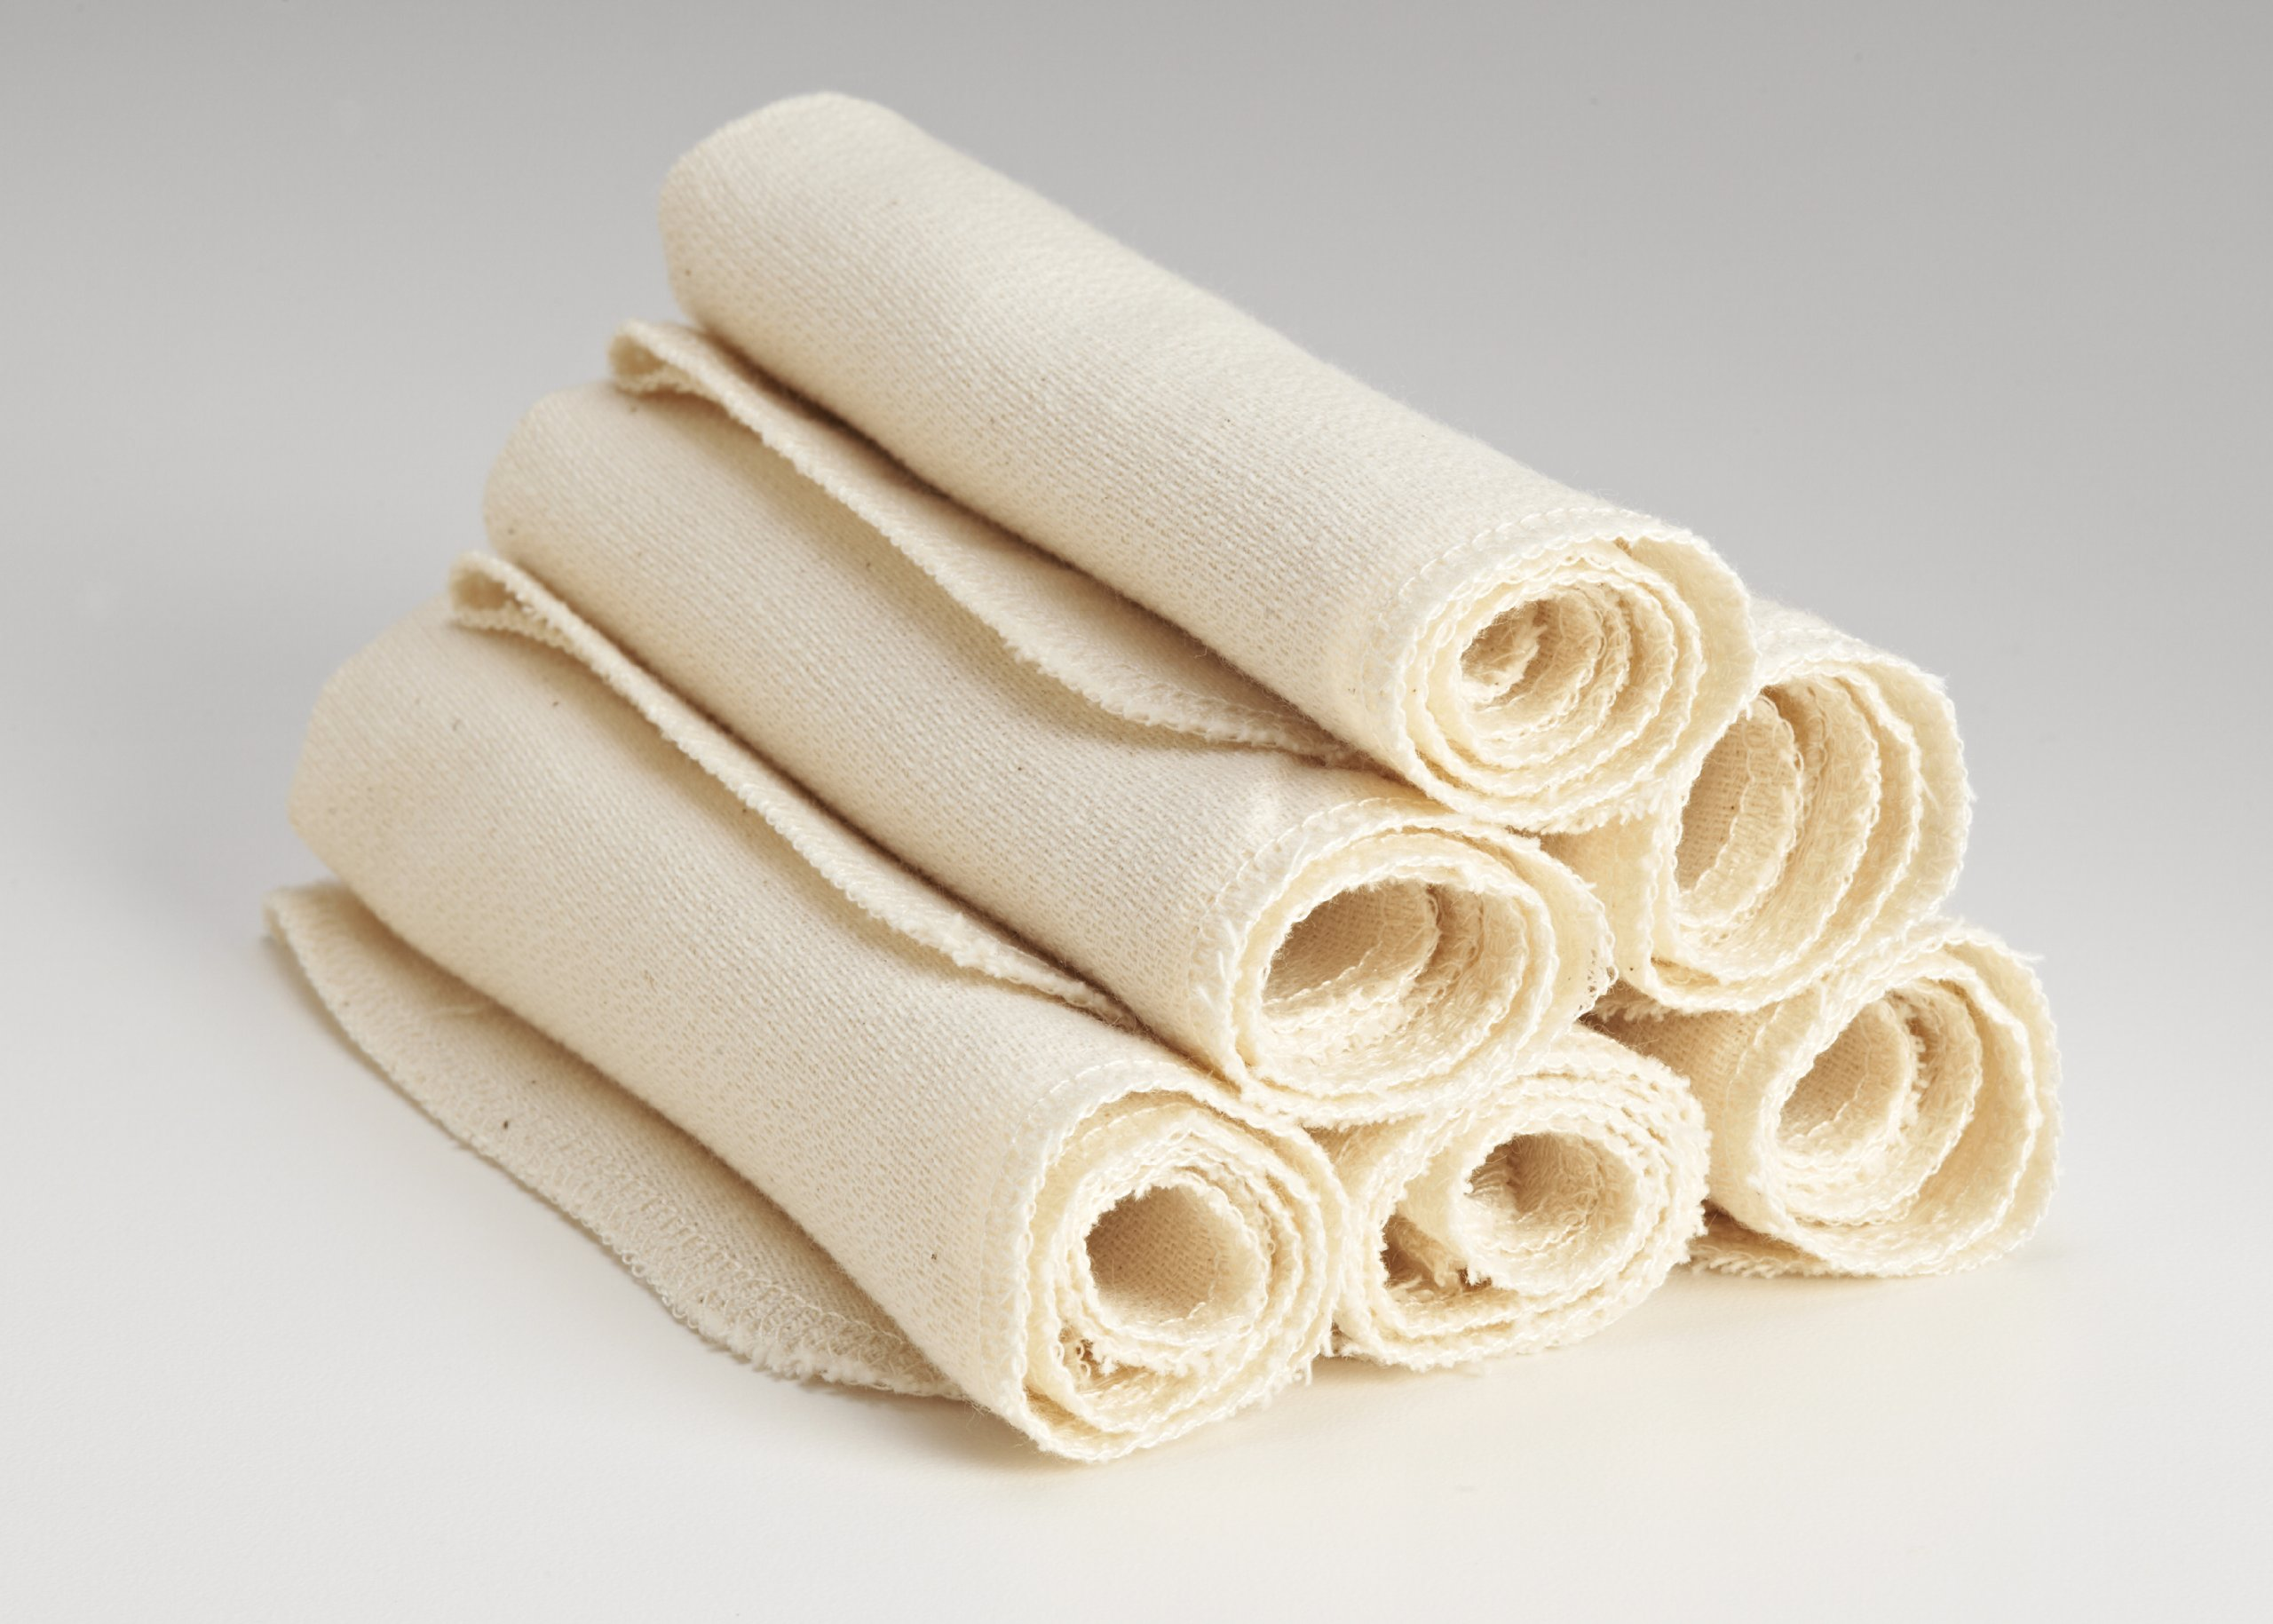 Organic Cloth Paper Towels Cleaning Cloth - Set of 6 11x11 in Natural